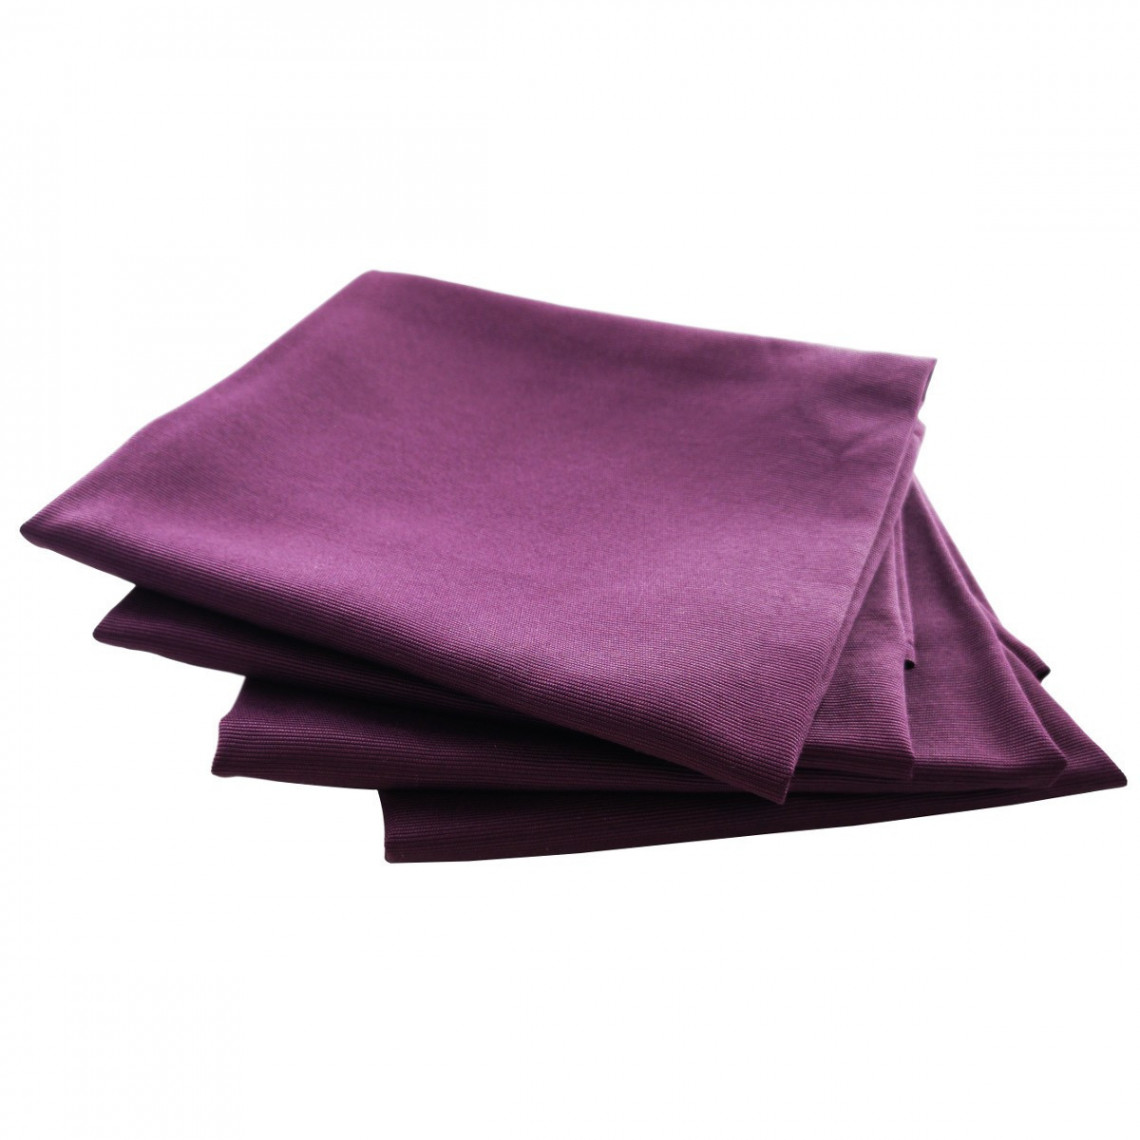 Serviette de table Monarque prune (M1)